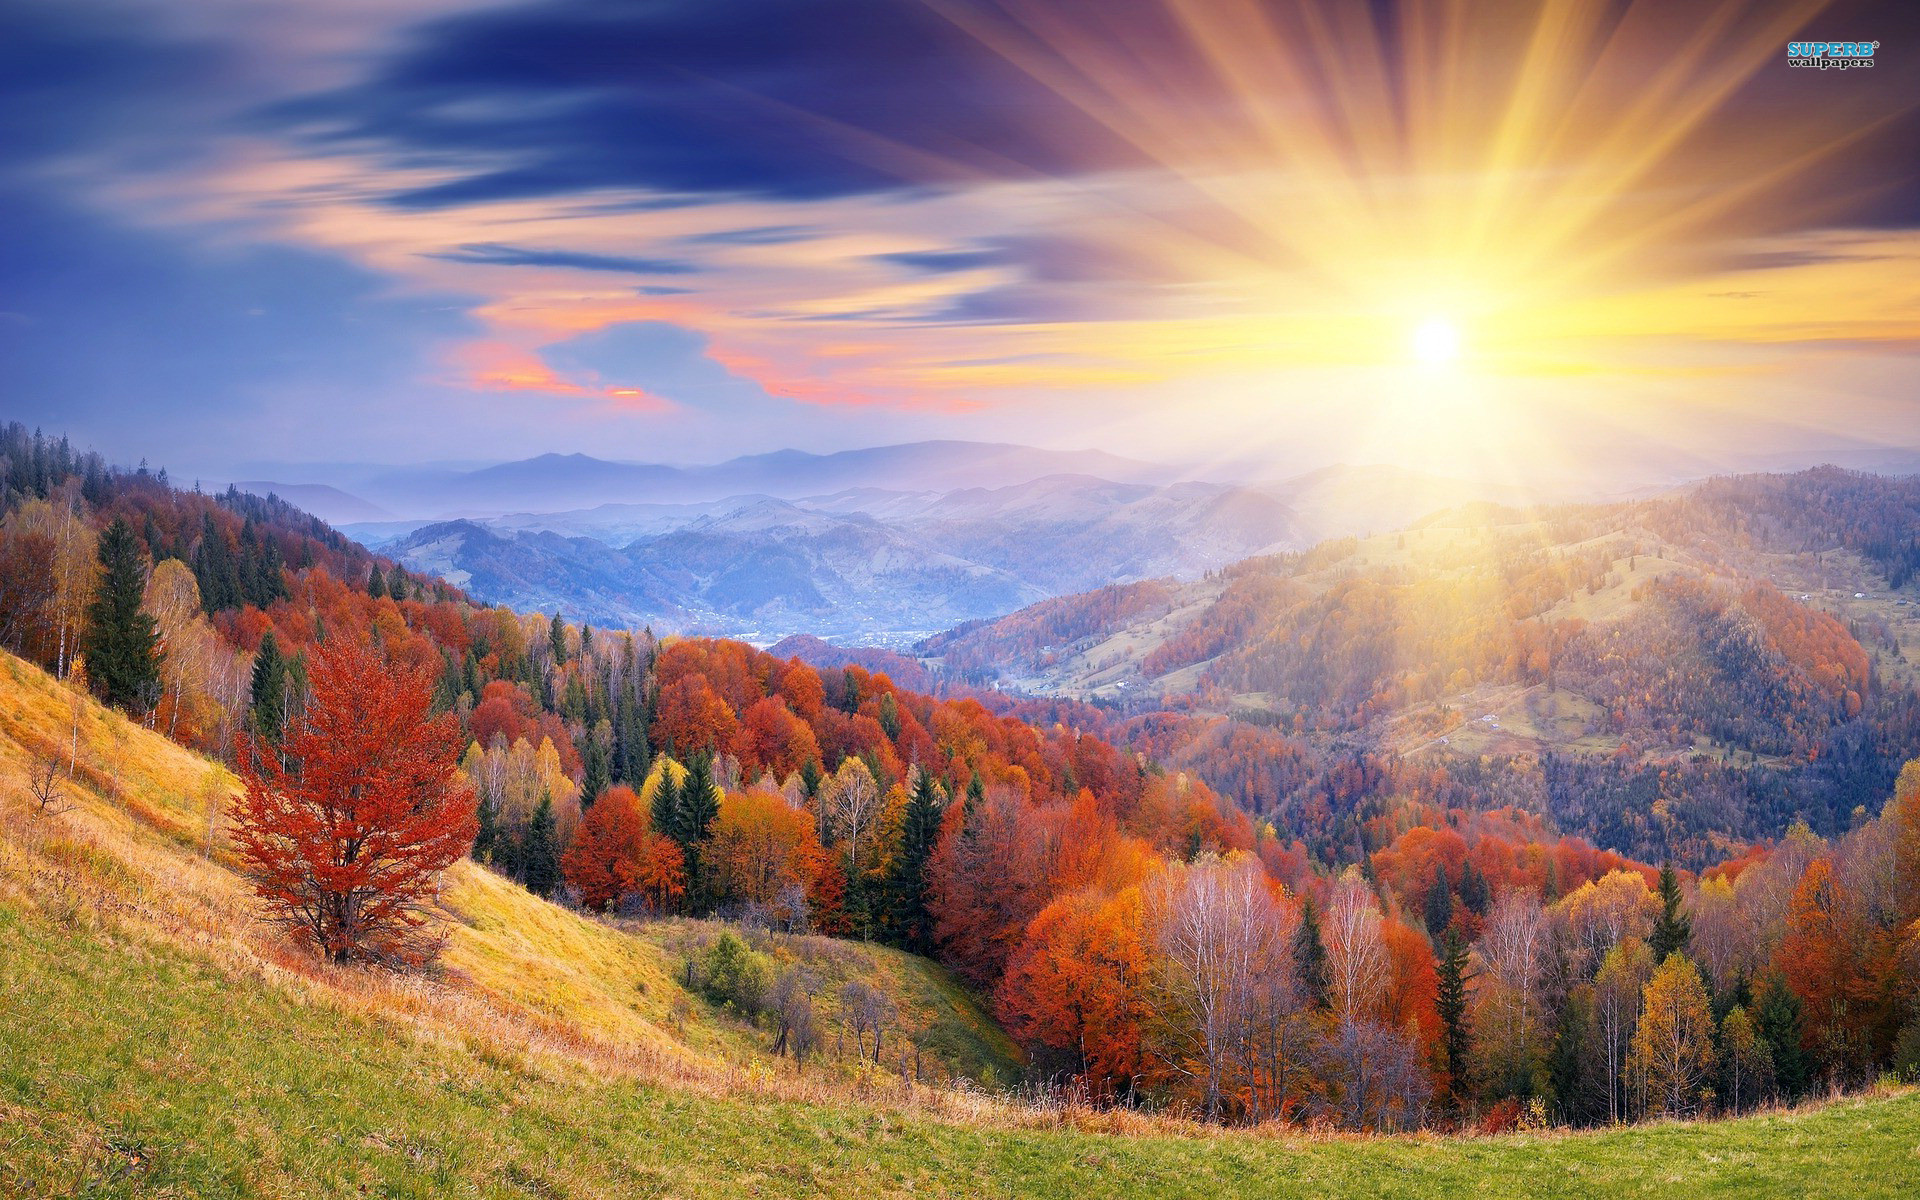 Sunrise Wallpapers – The most beautiful scenery in the world .